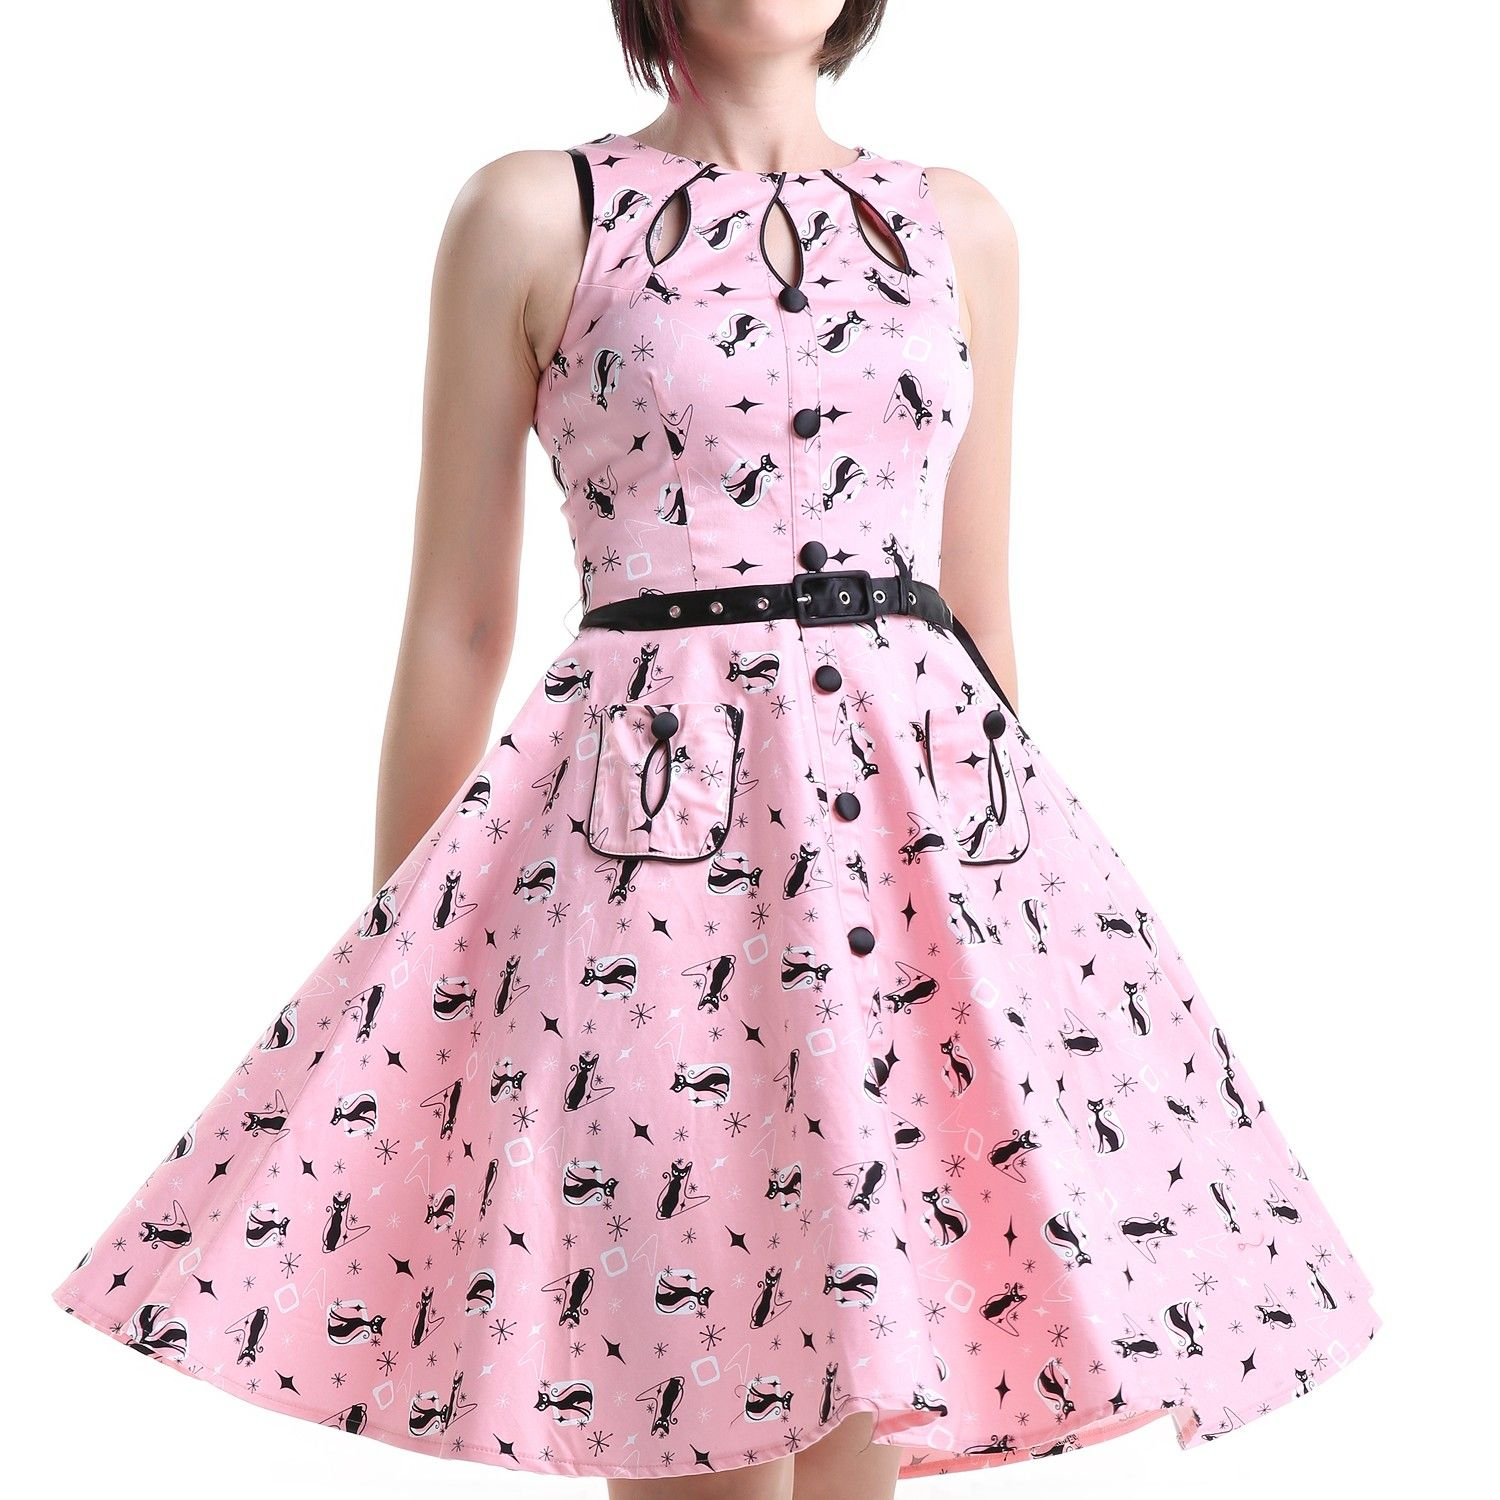 Vestido Pin Up Rosa con Gatitos | Crazyinlove España | Pin Up ...